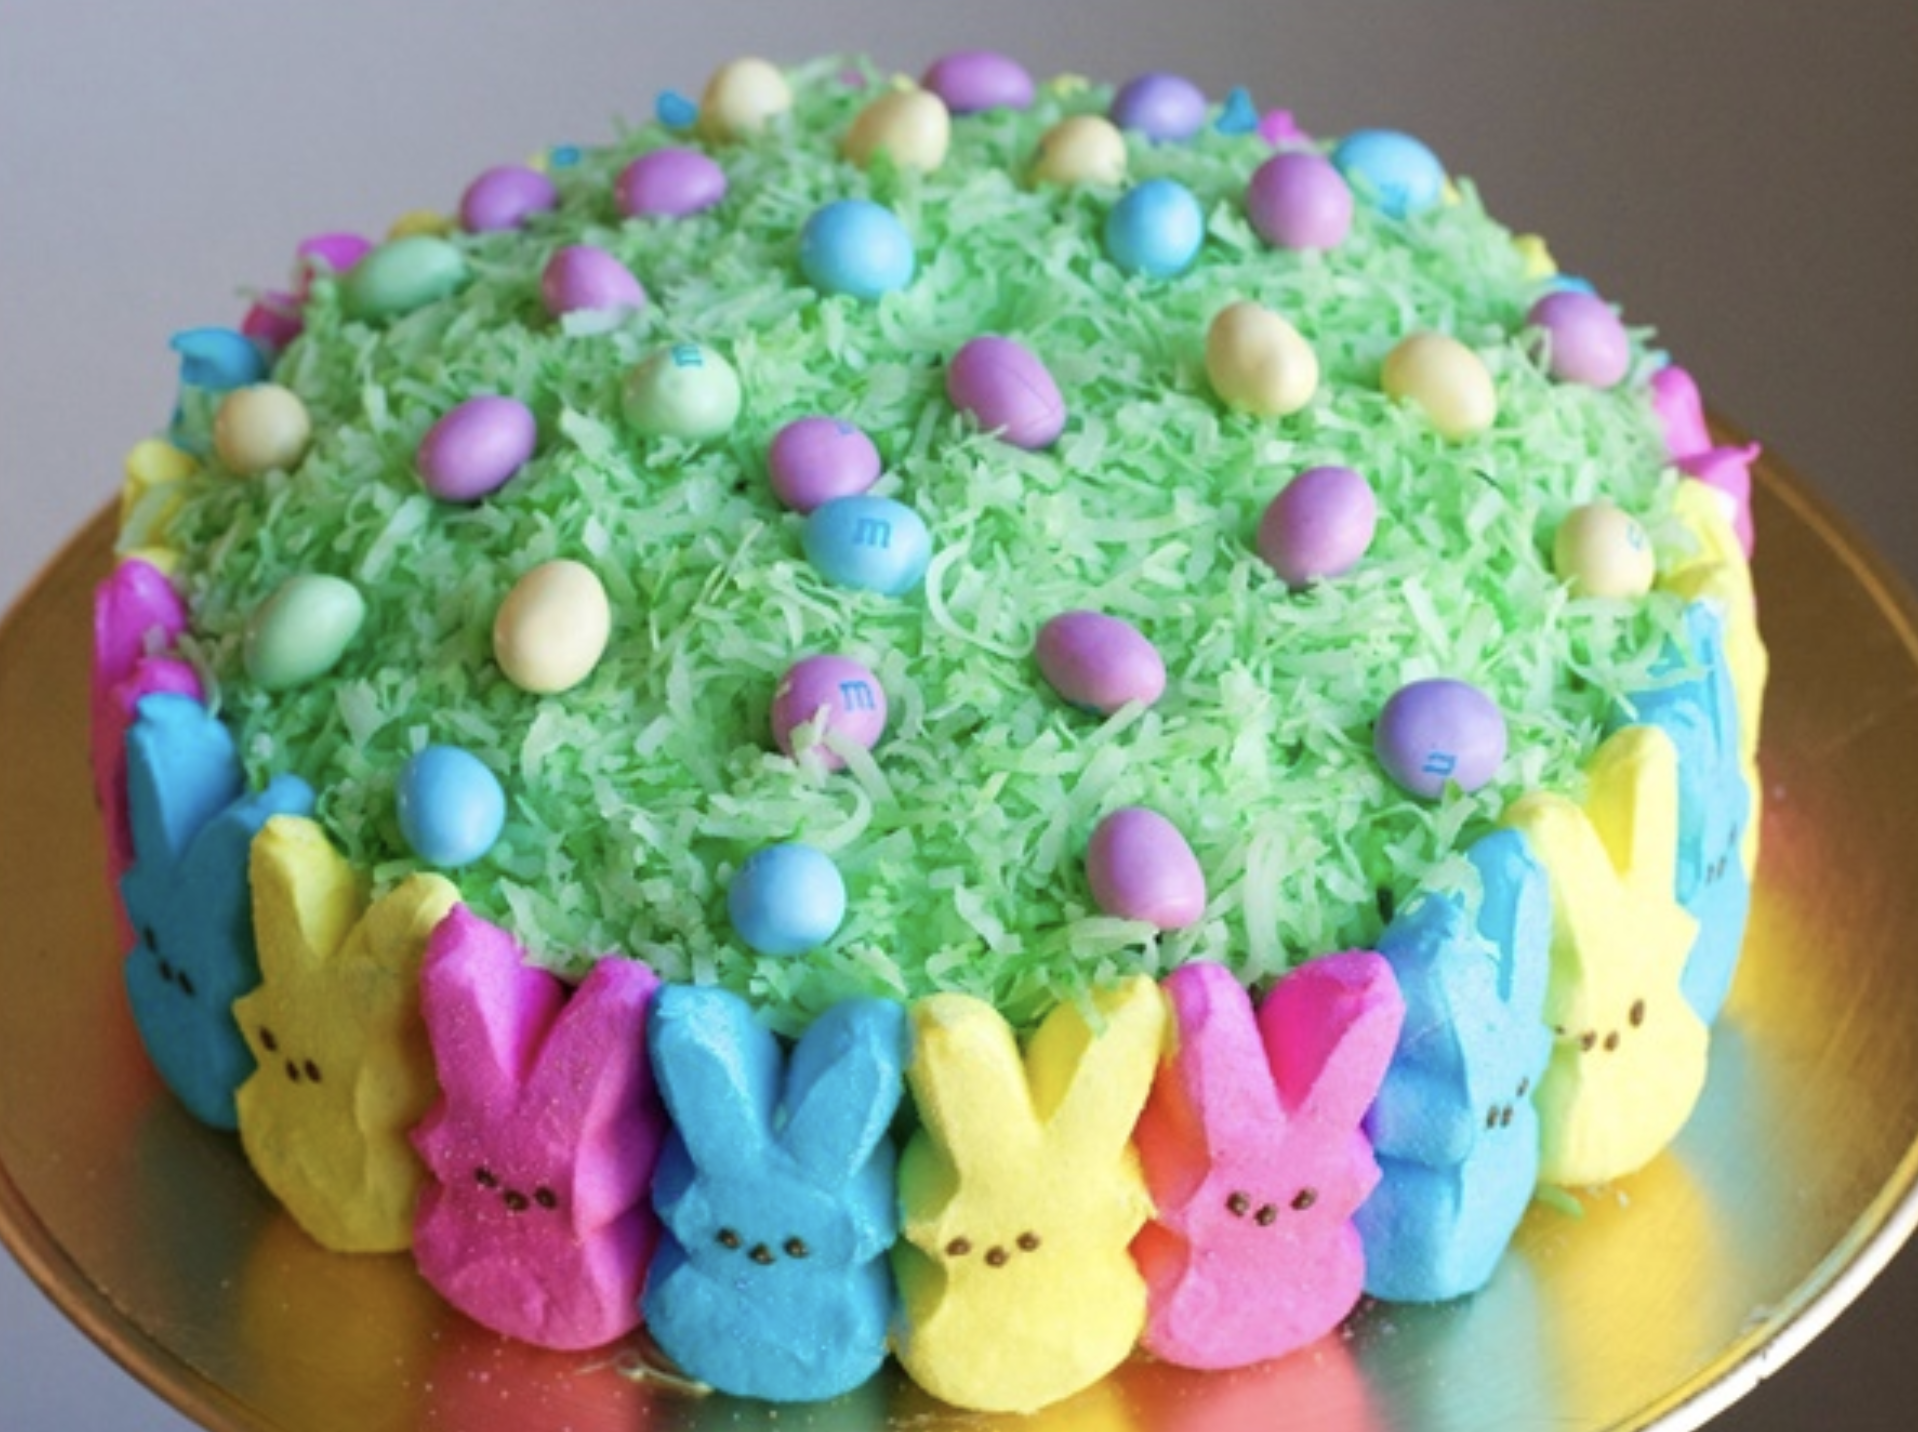 Easter Peep Cake - Need a creative Easter cake idea? Here it is ! This beautiful Easter peep cake is bright that decorated with the peeps and grassy hidden eggs.I love all the colors . It's so easy and fun to make!